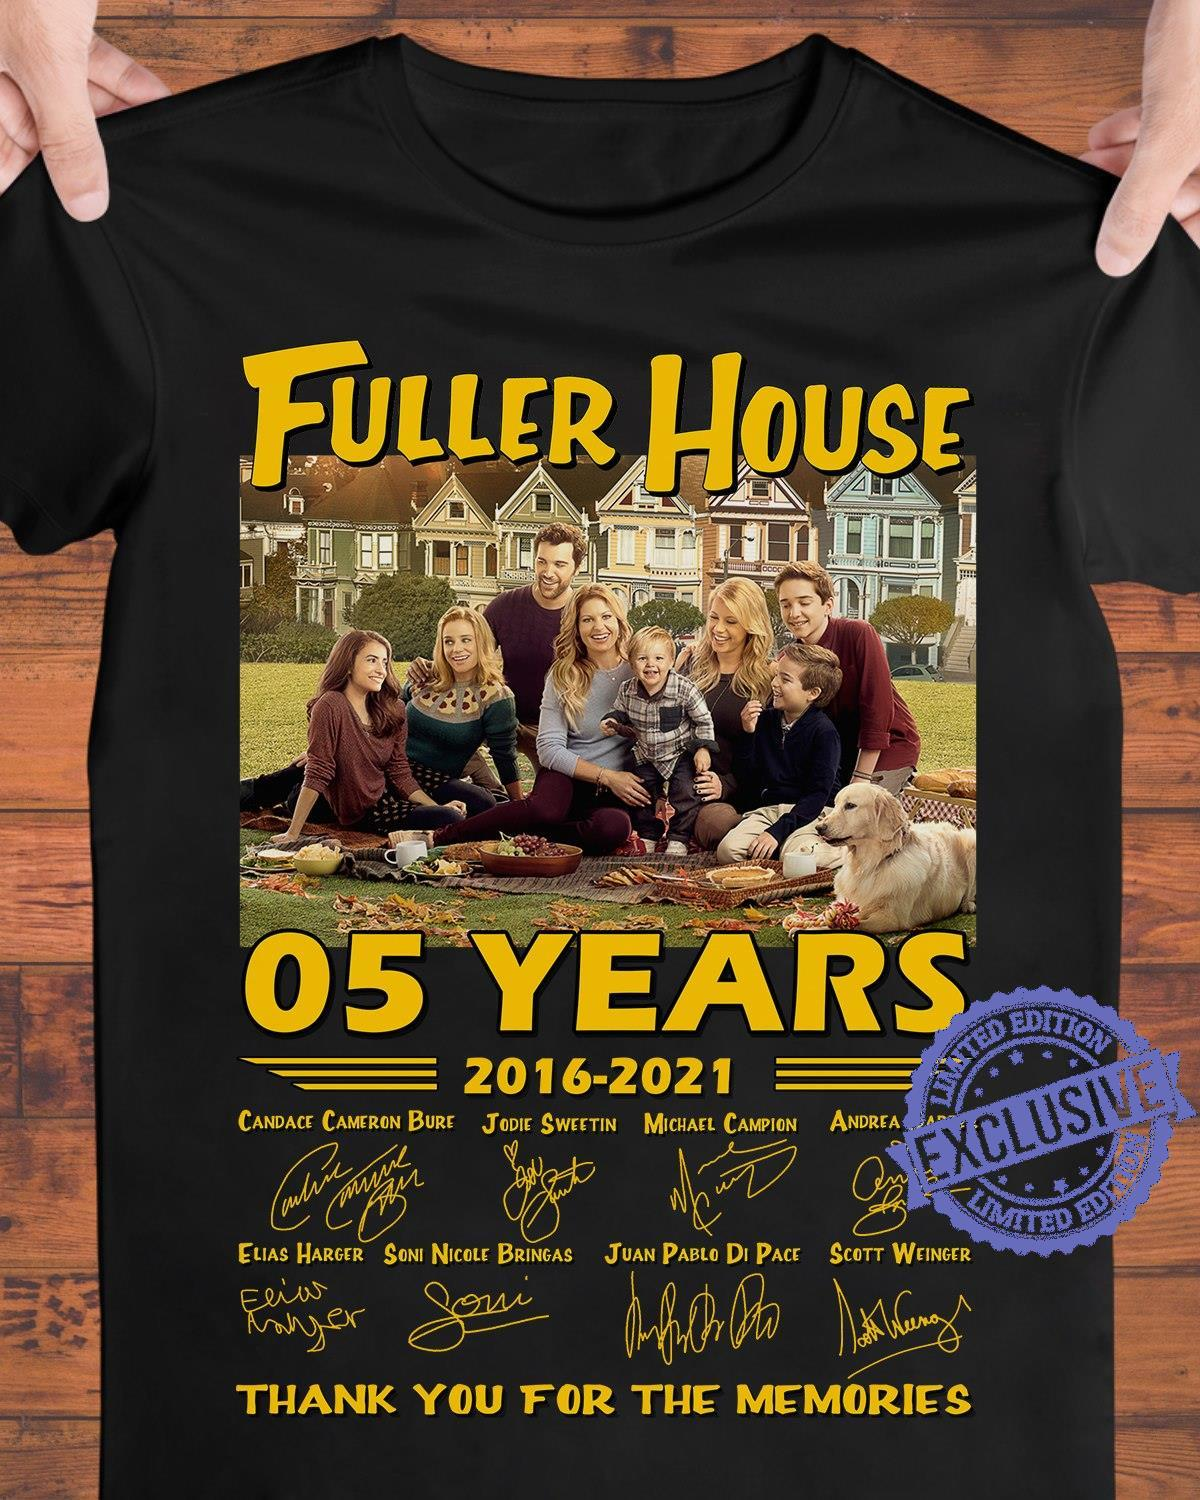 Fuller house 05 years 2016 2021 thank you for the memories unisex shirt